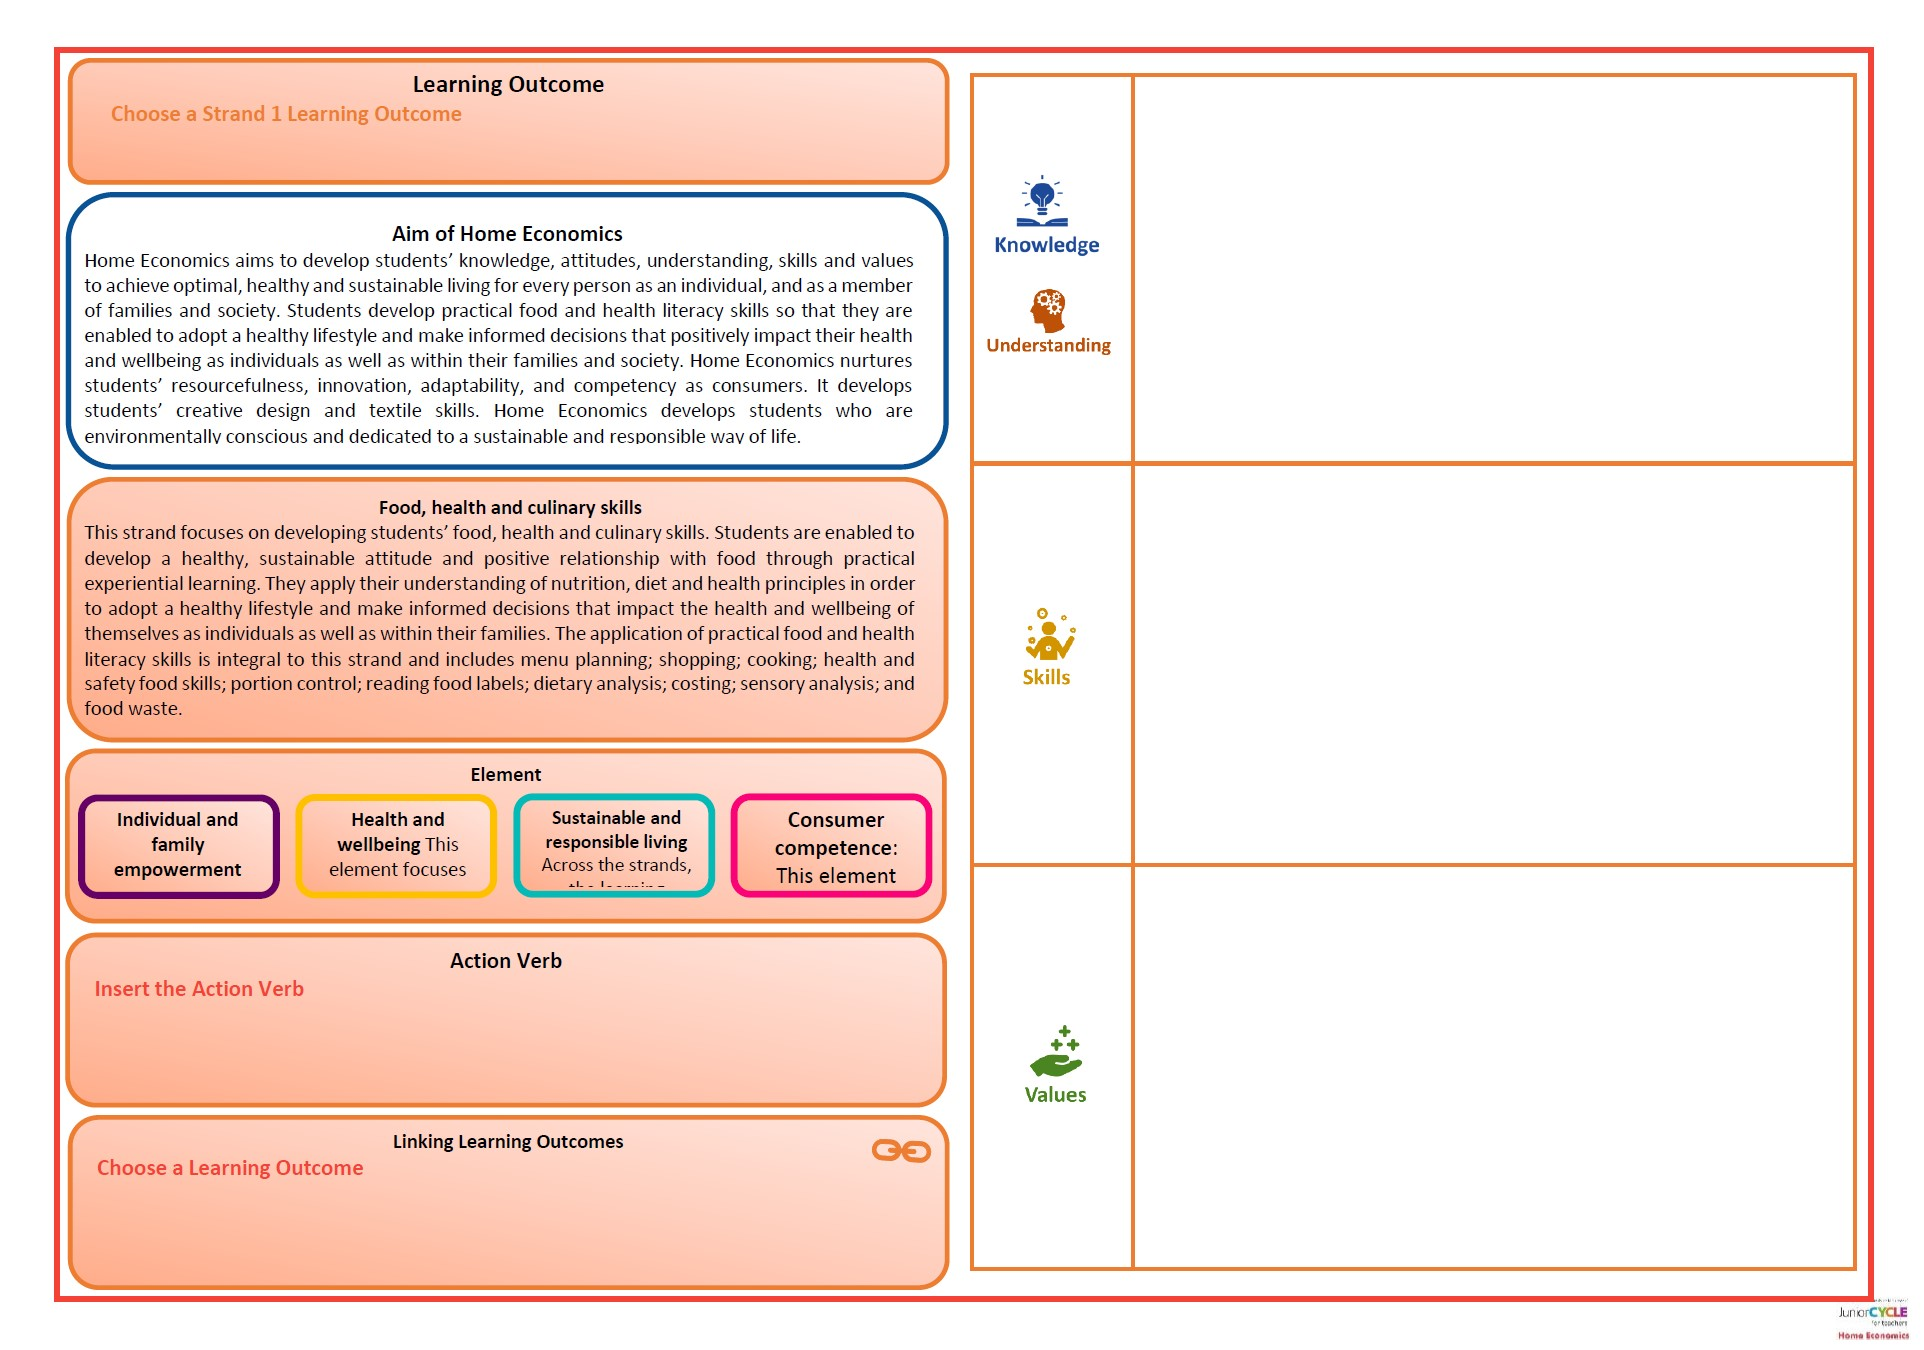 Home Economics Exploring Learning Outcomes Template Strand 1